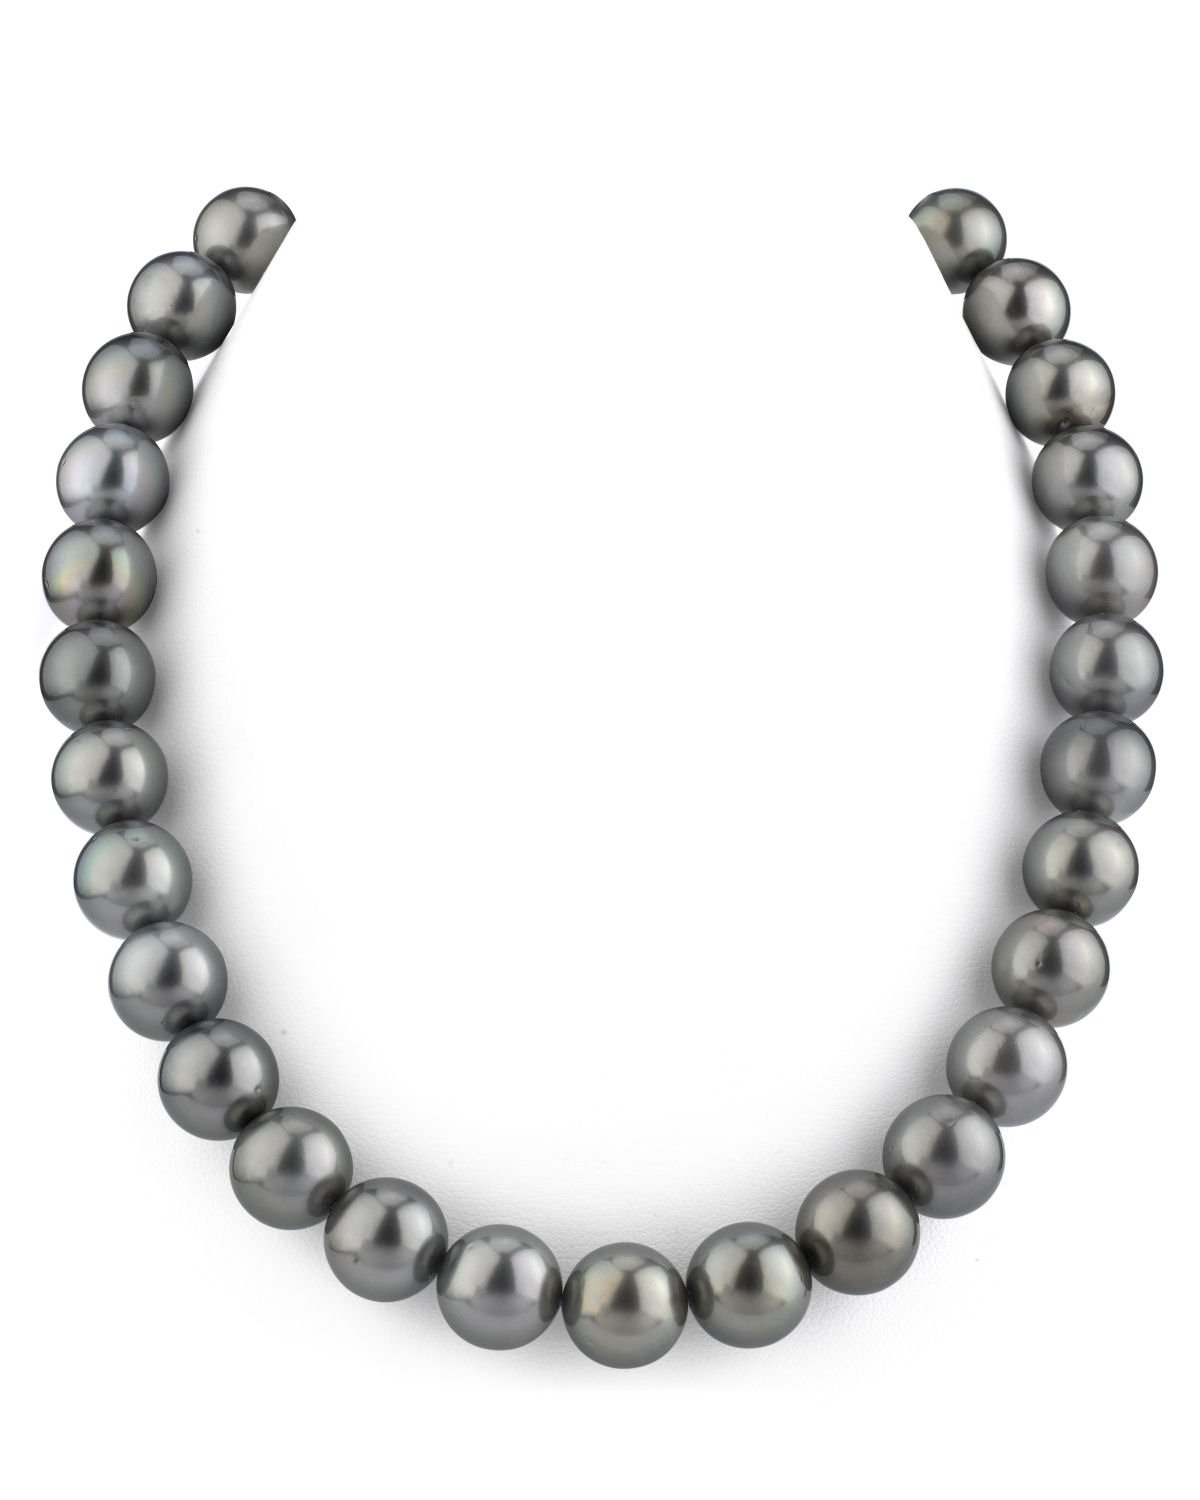 14K Gold 10-12mm Tahitian South Sea Cultured Pearl Necklace - AAA Quality, 18'' Princess Length